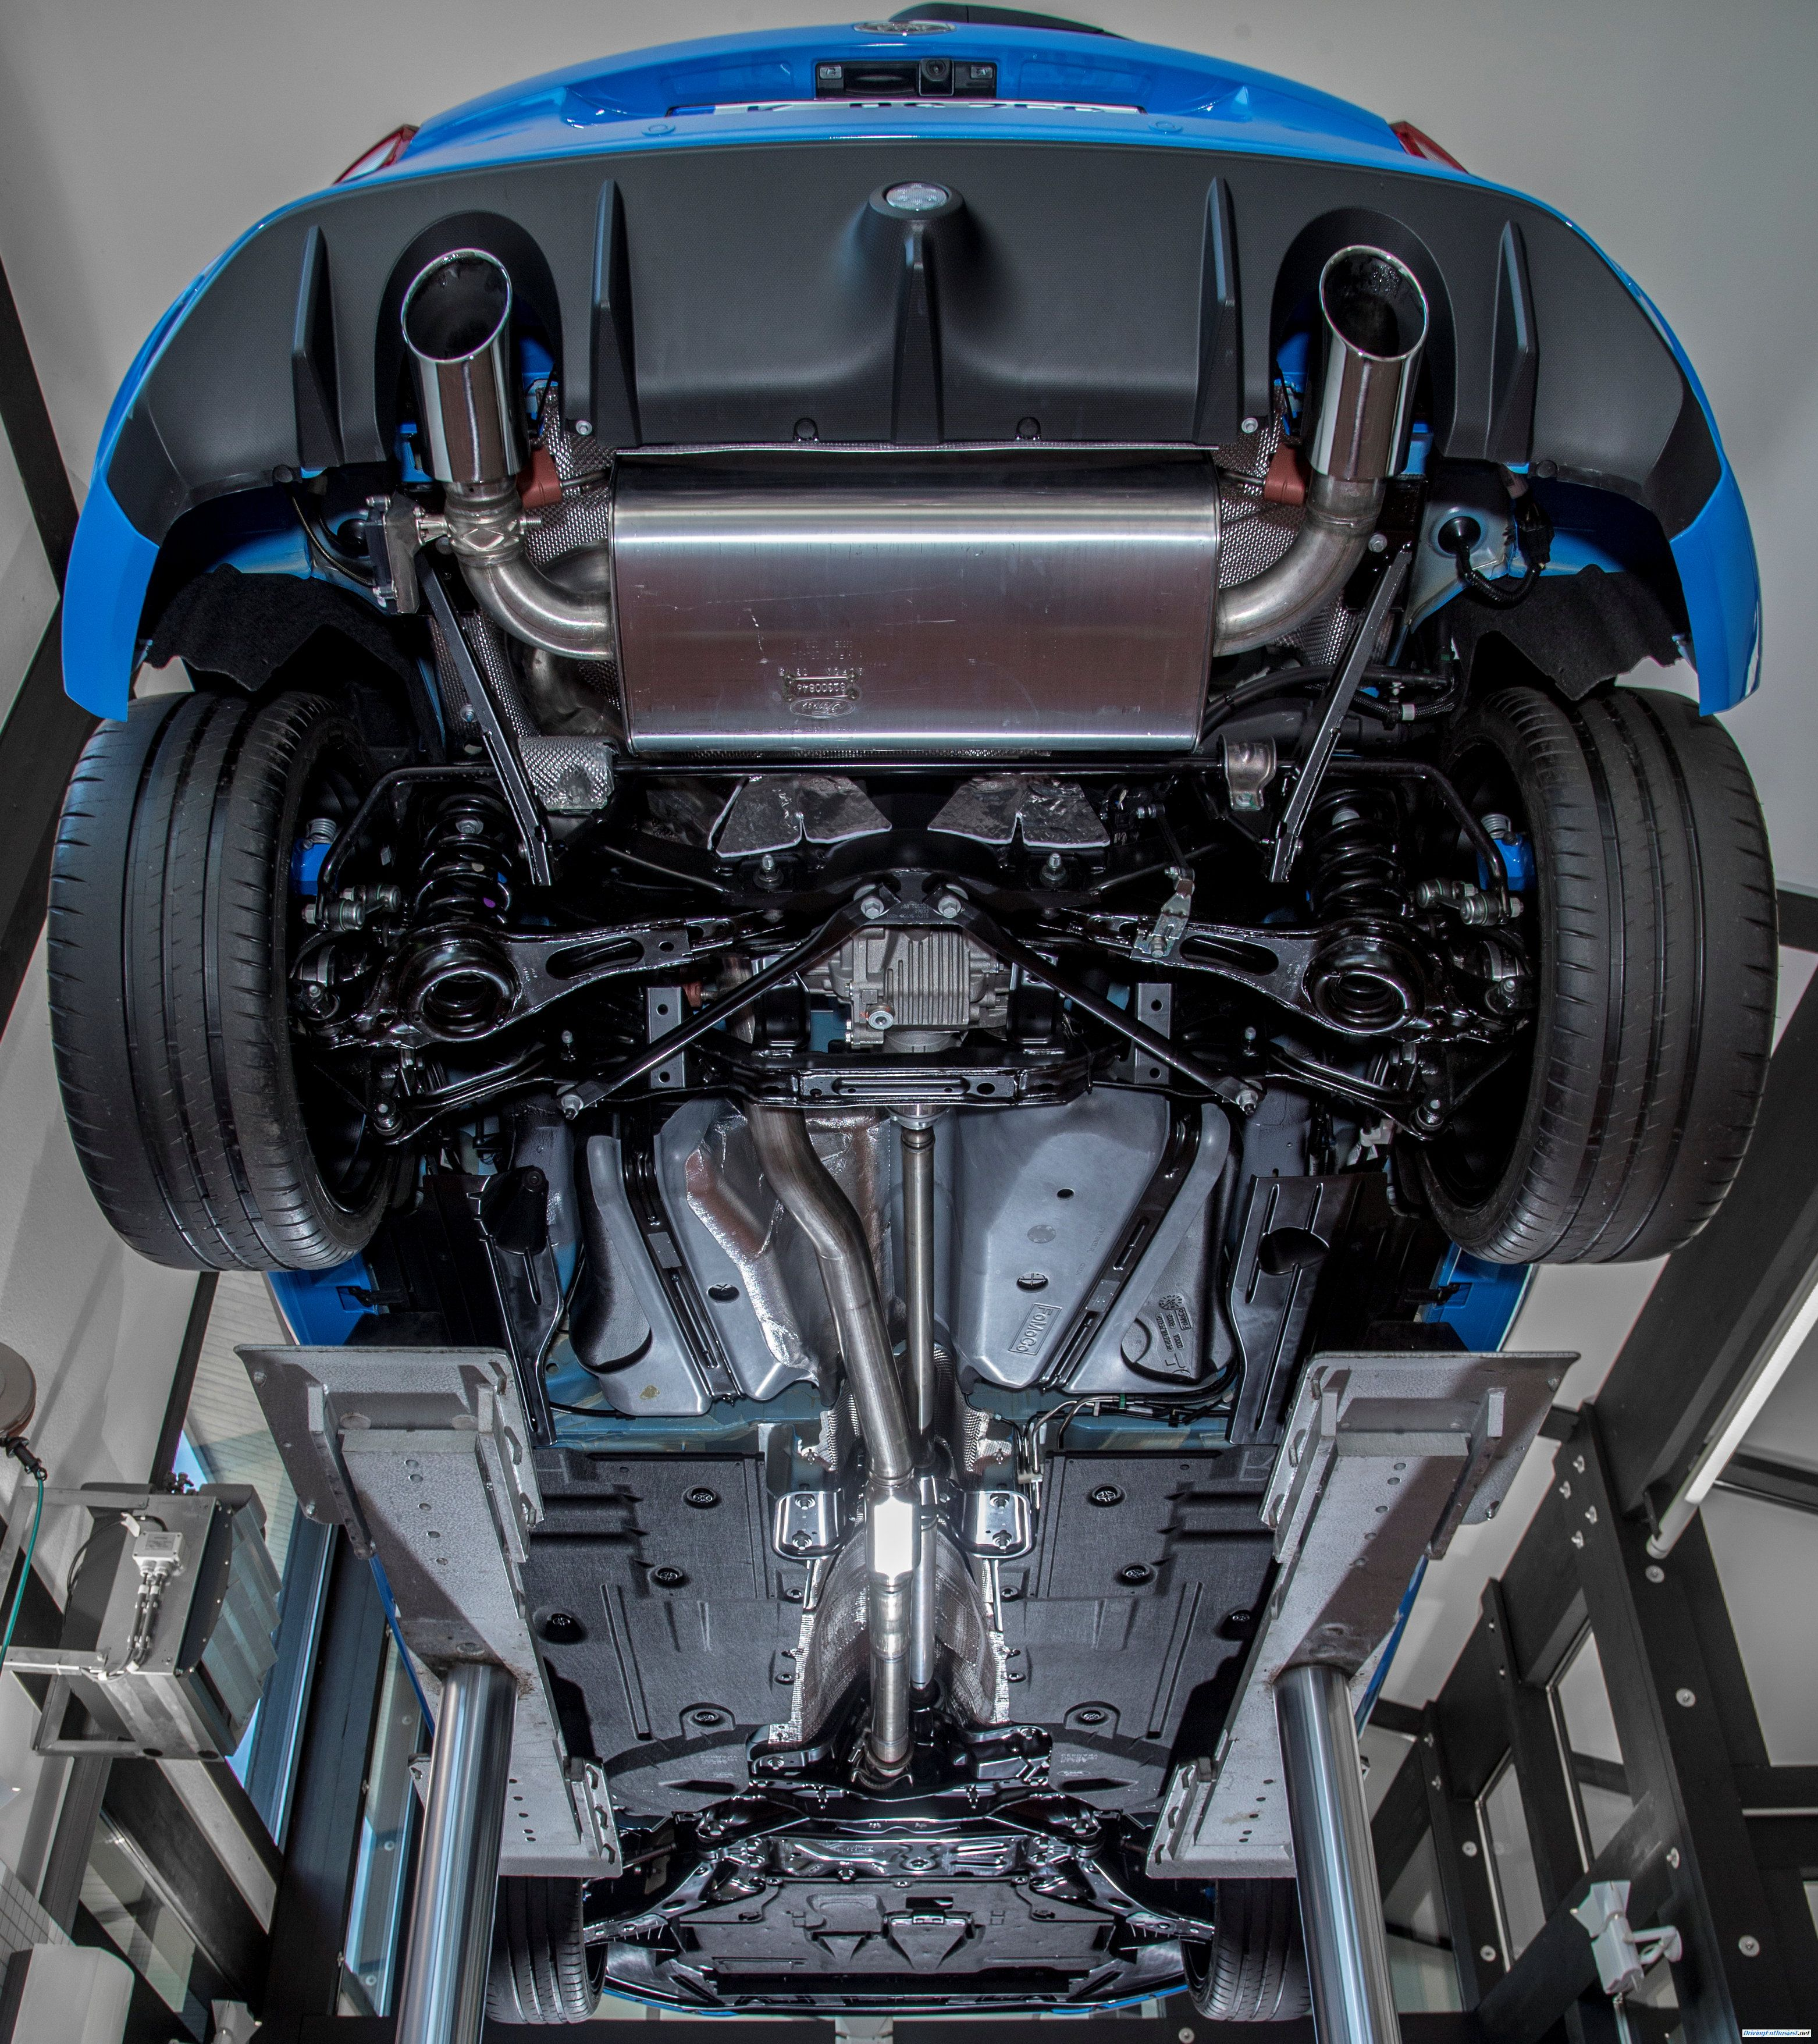 2016 Ford Focus Rs Underside Details In High Res Ford Focus Rs Ford Focus Focus Rs